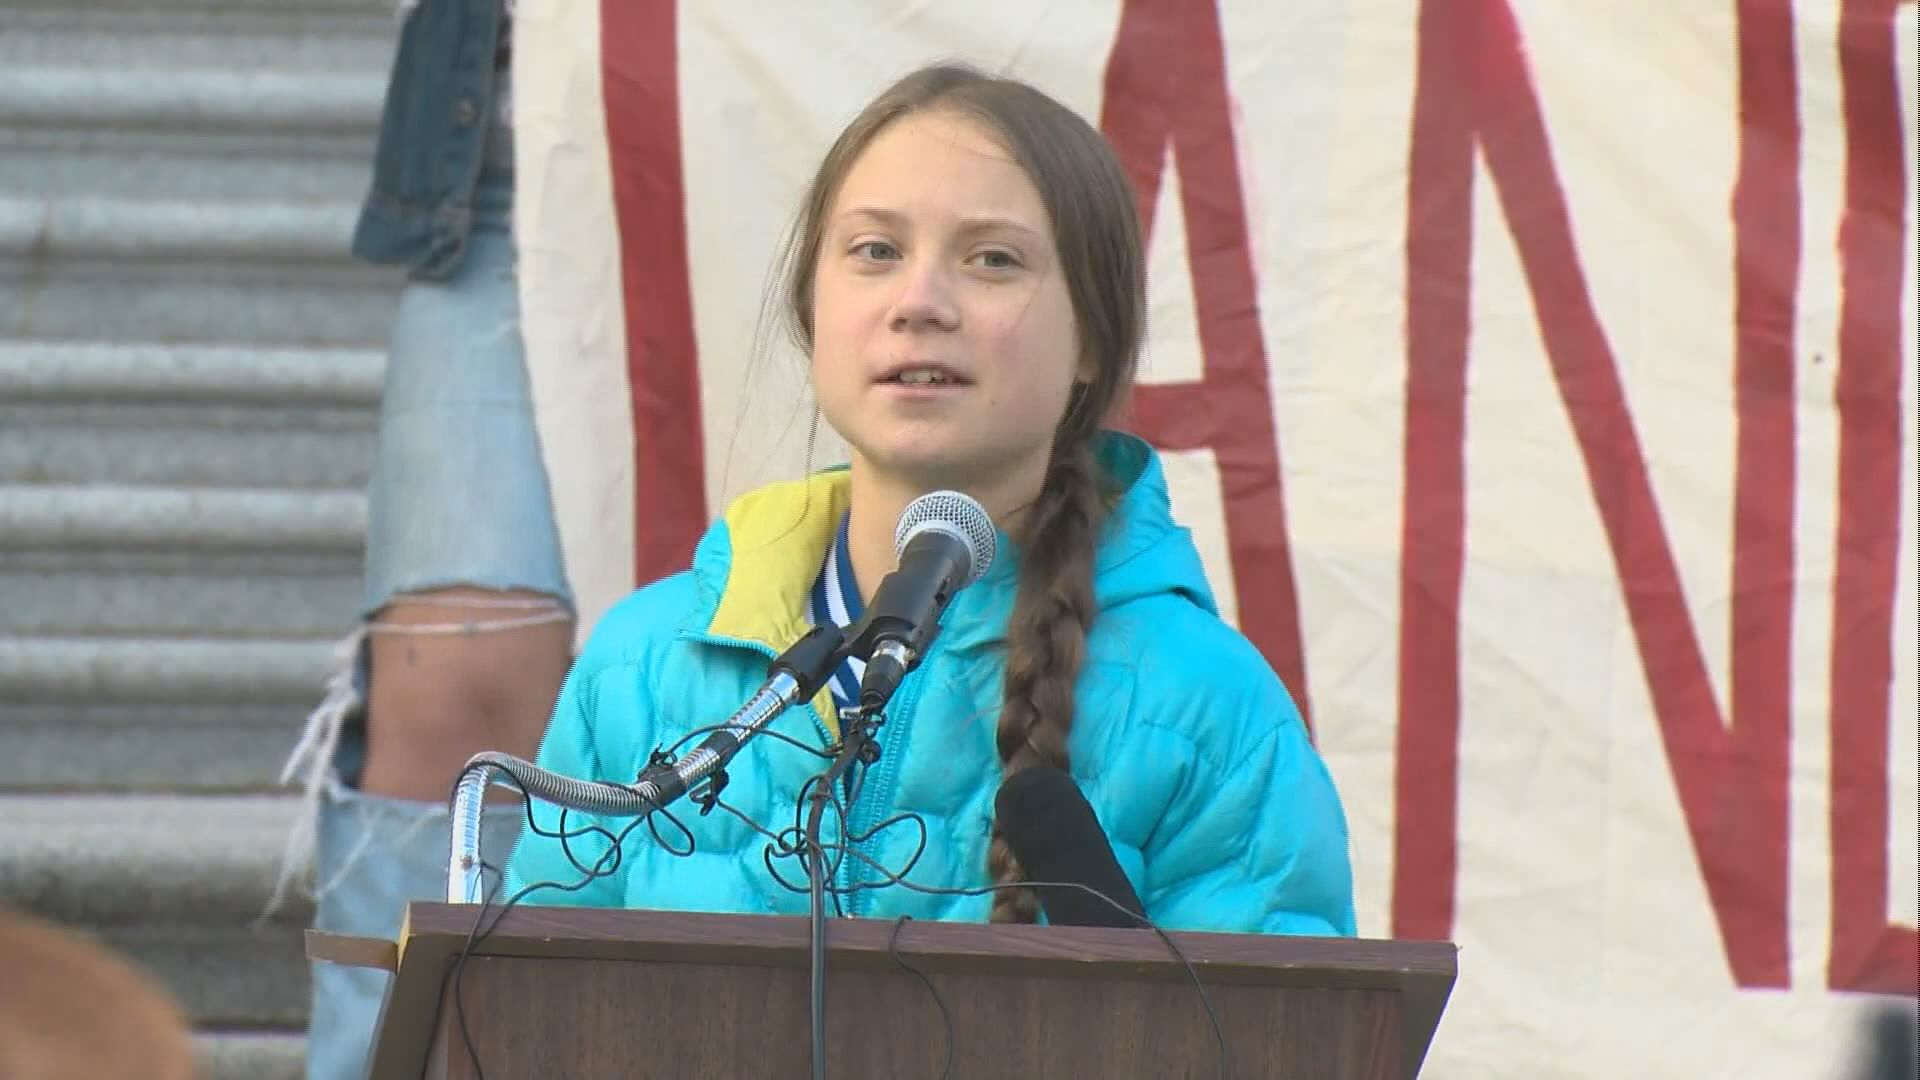 Swedish teen climate activist coming to Vancouver